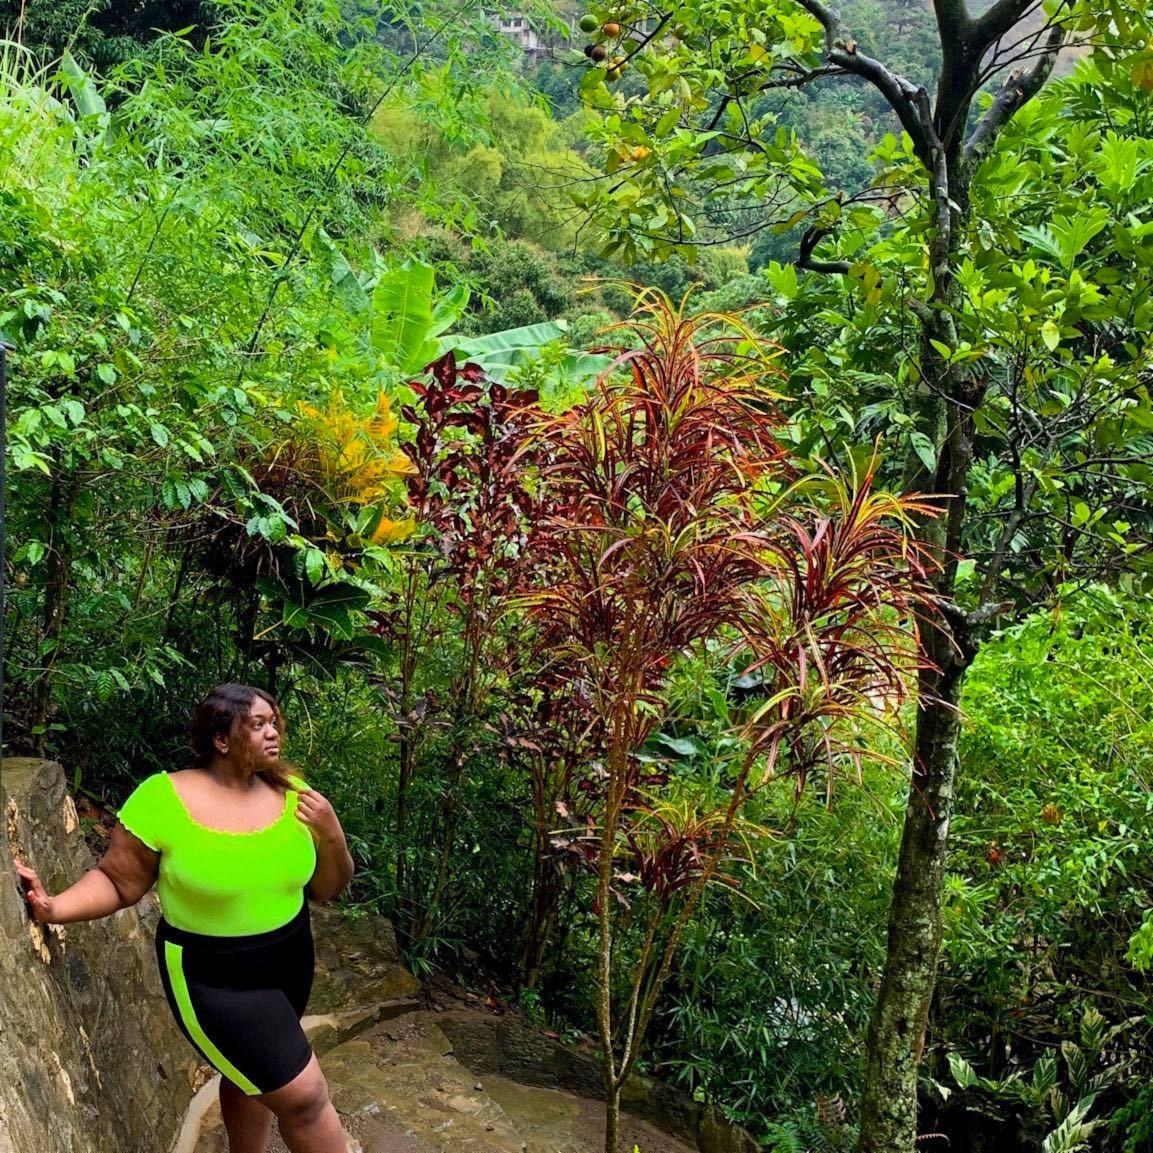 solo travel for black women, black travellers